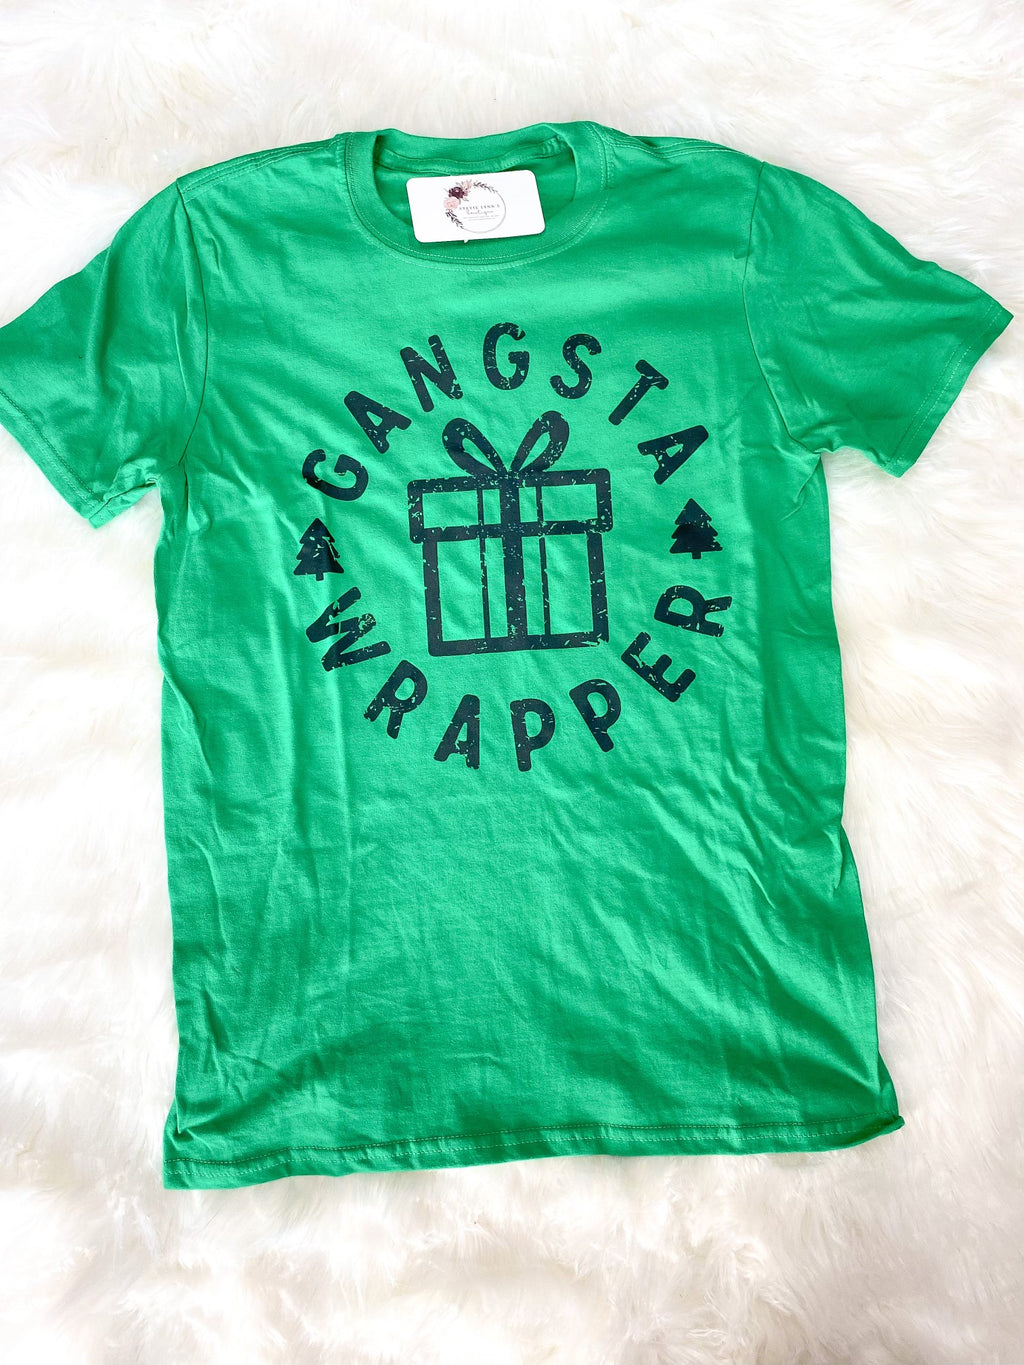 *BFDB* Gangsta Wrapper Graphic Tee